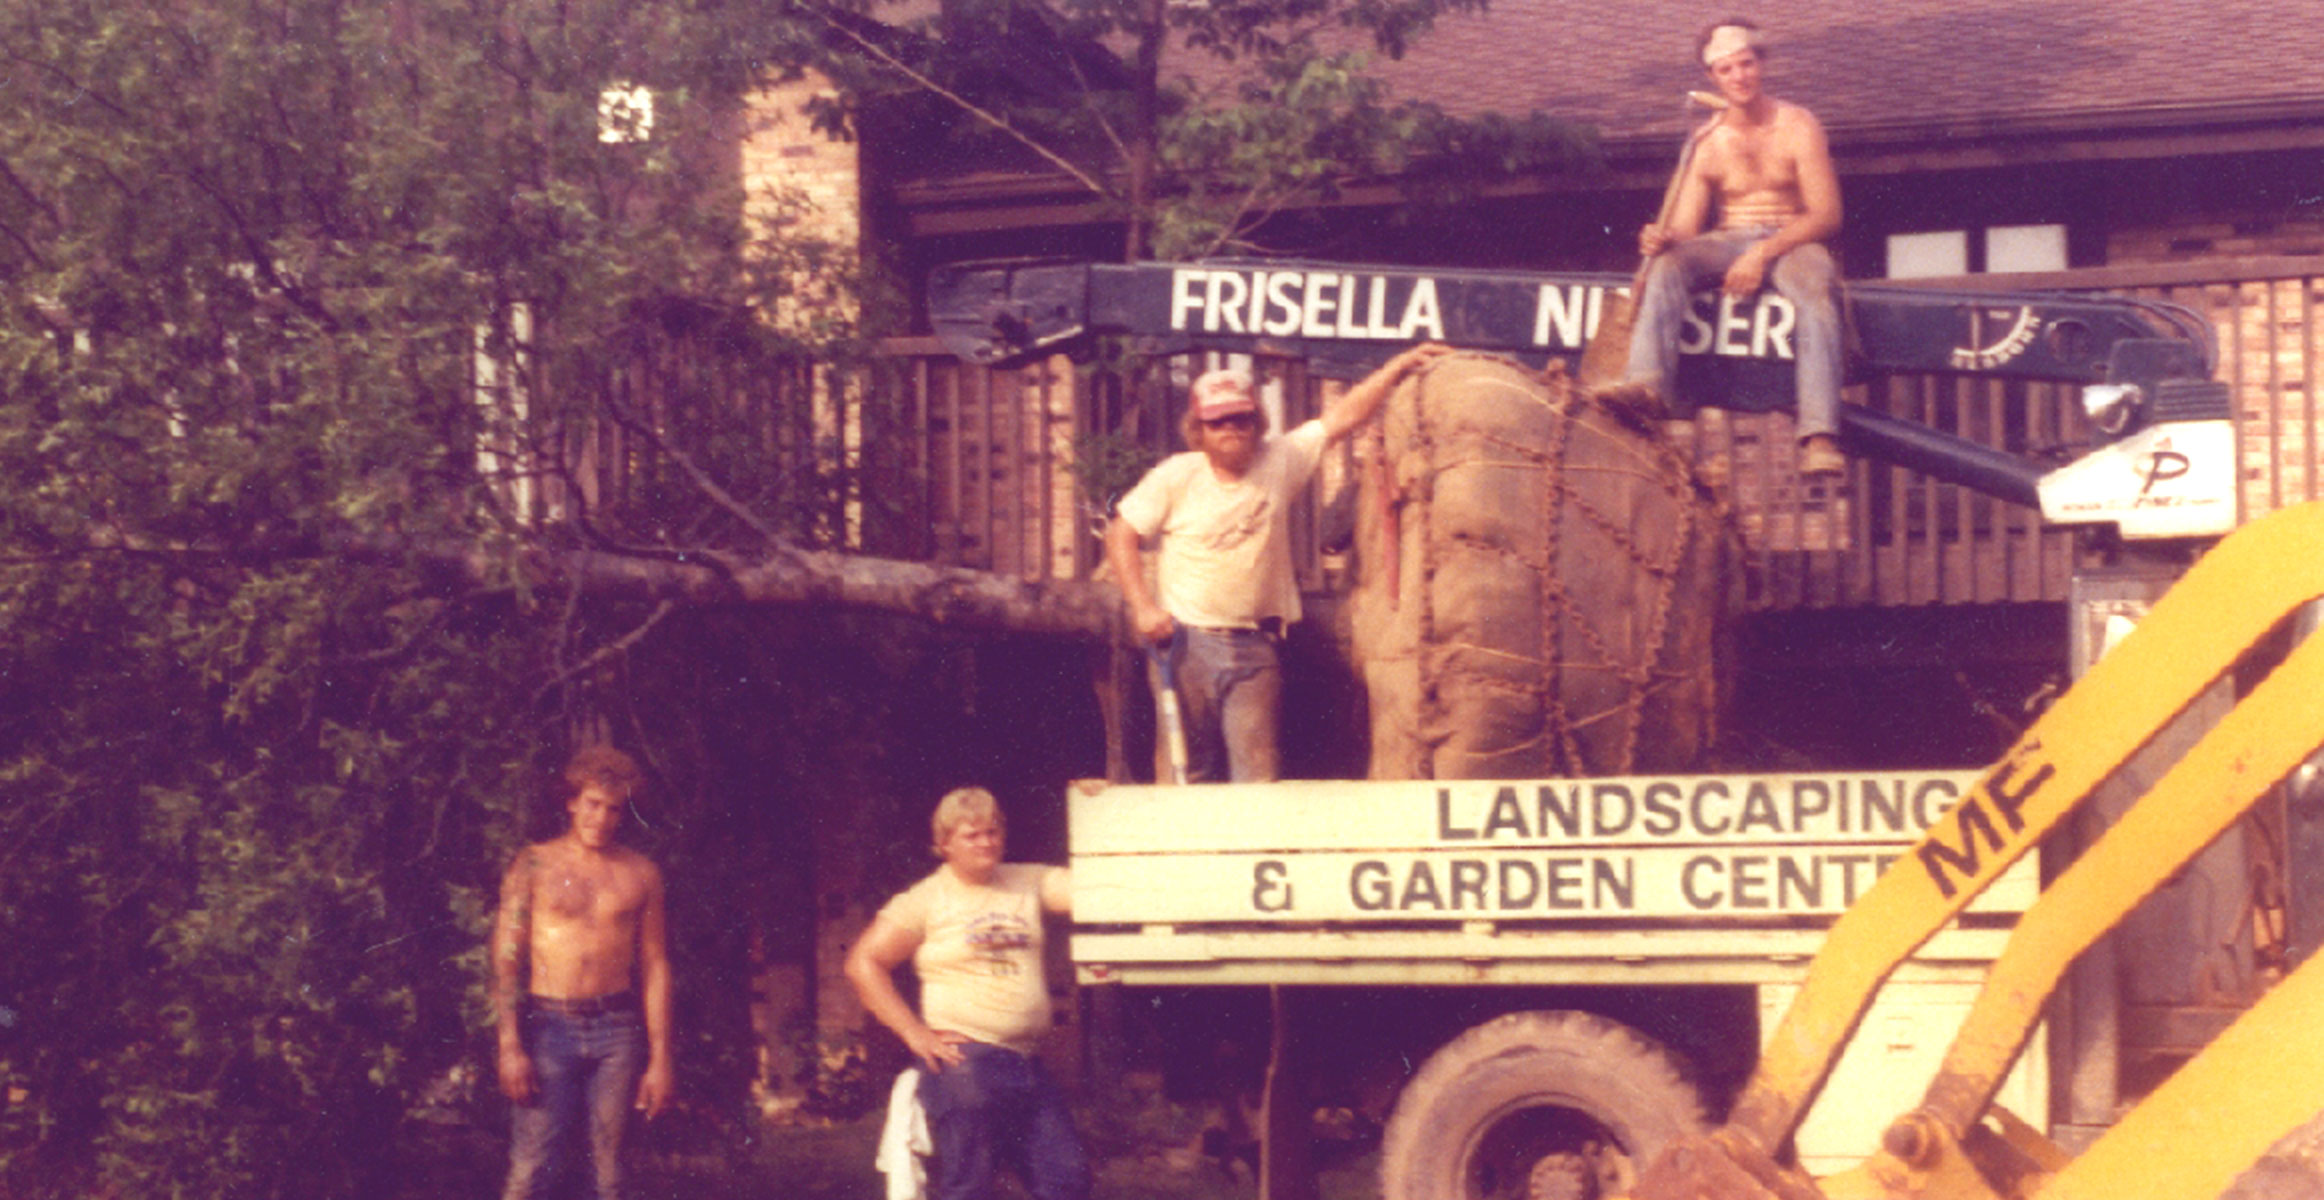 Photo of a vintage truck and Frisella employees hanging out